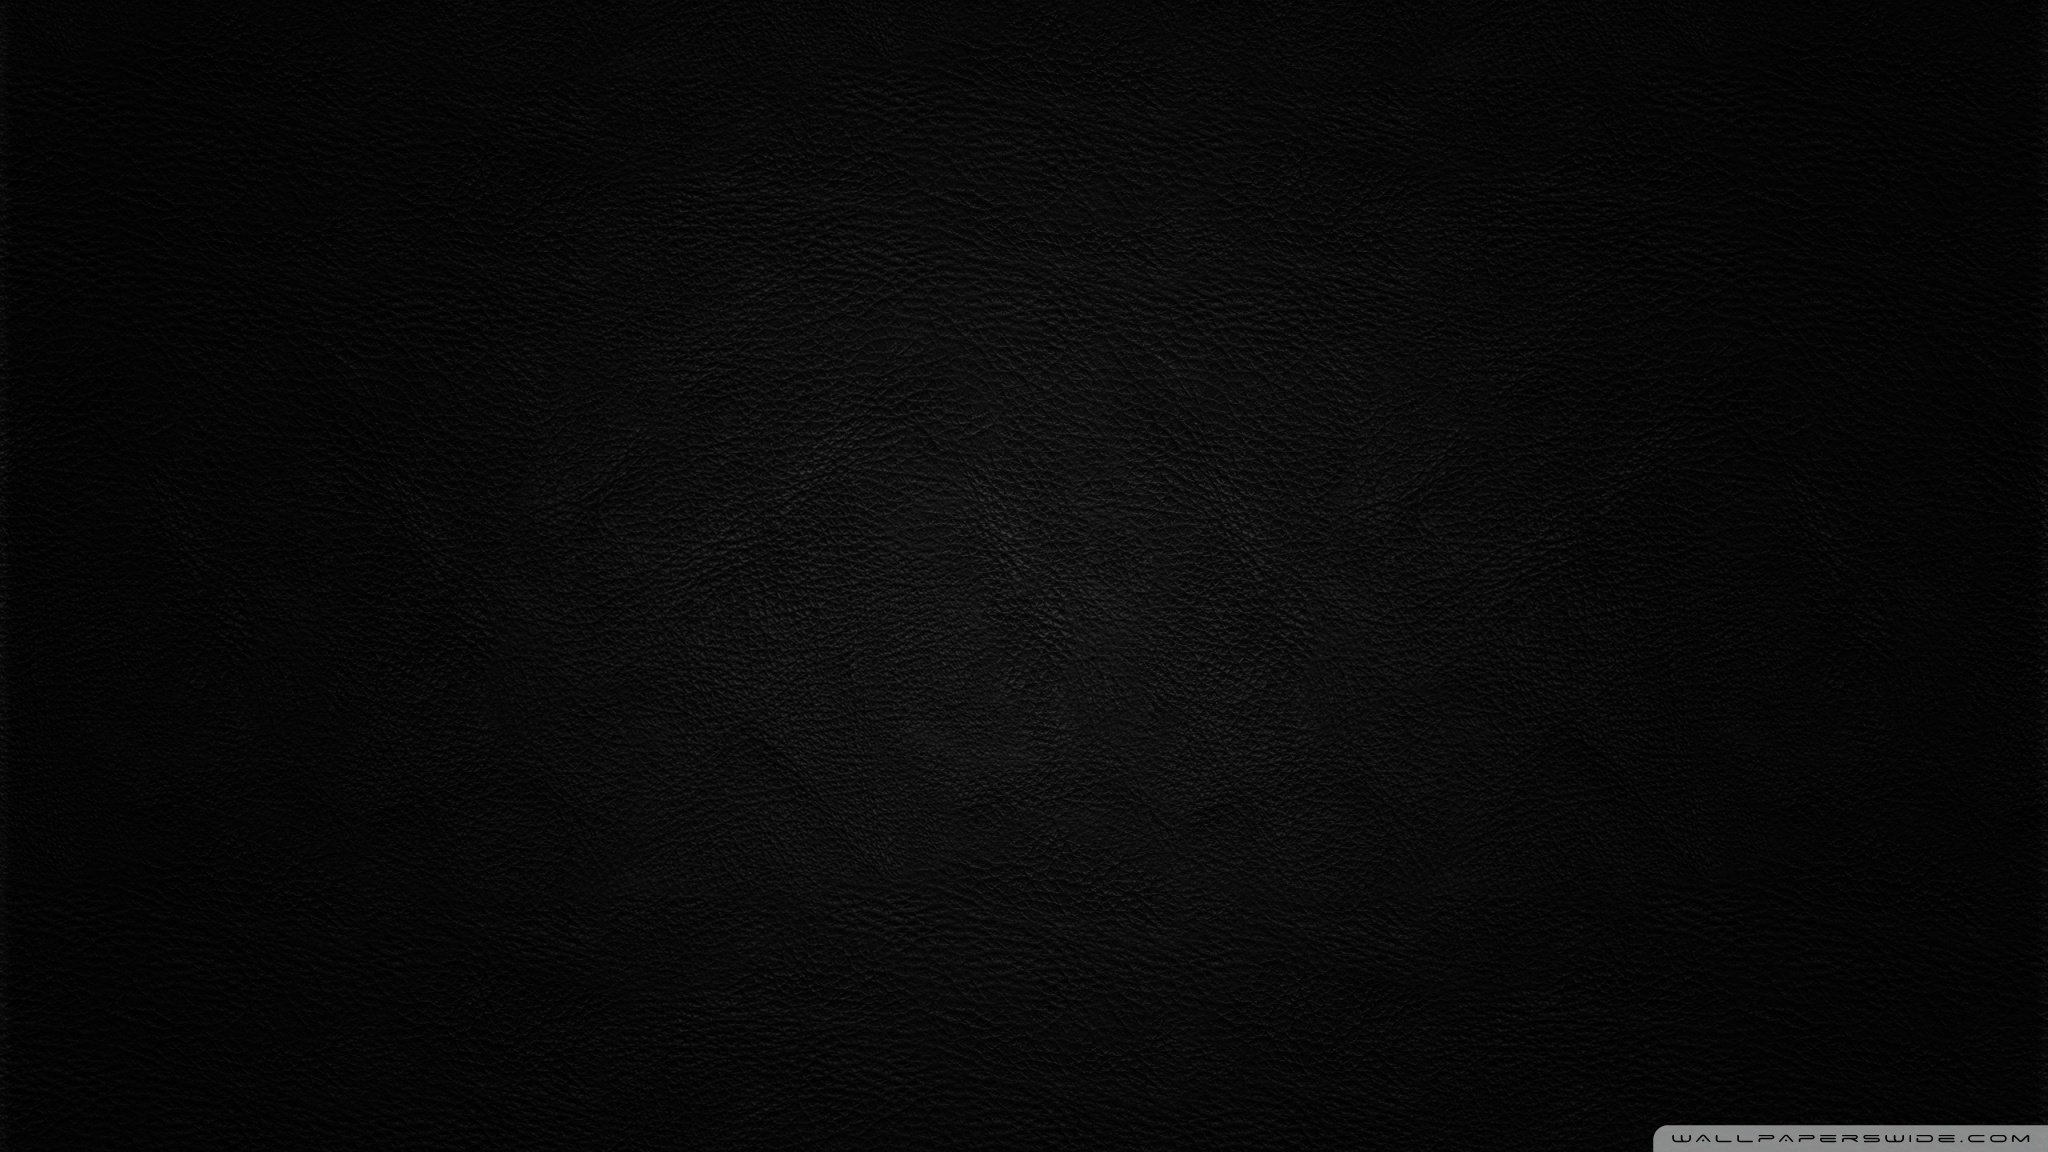 2048x1152 Black Wallpapers Top Free 2048x1152 Black